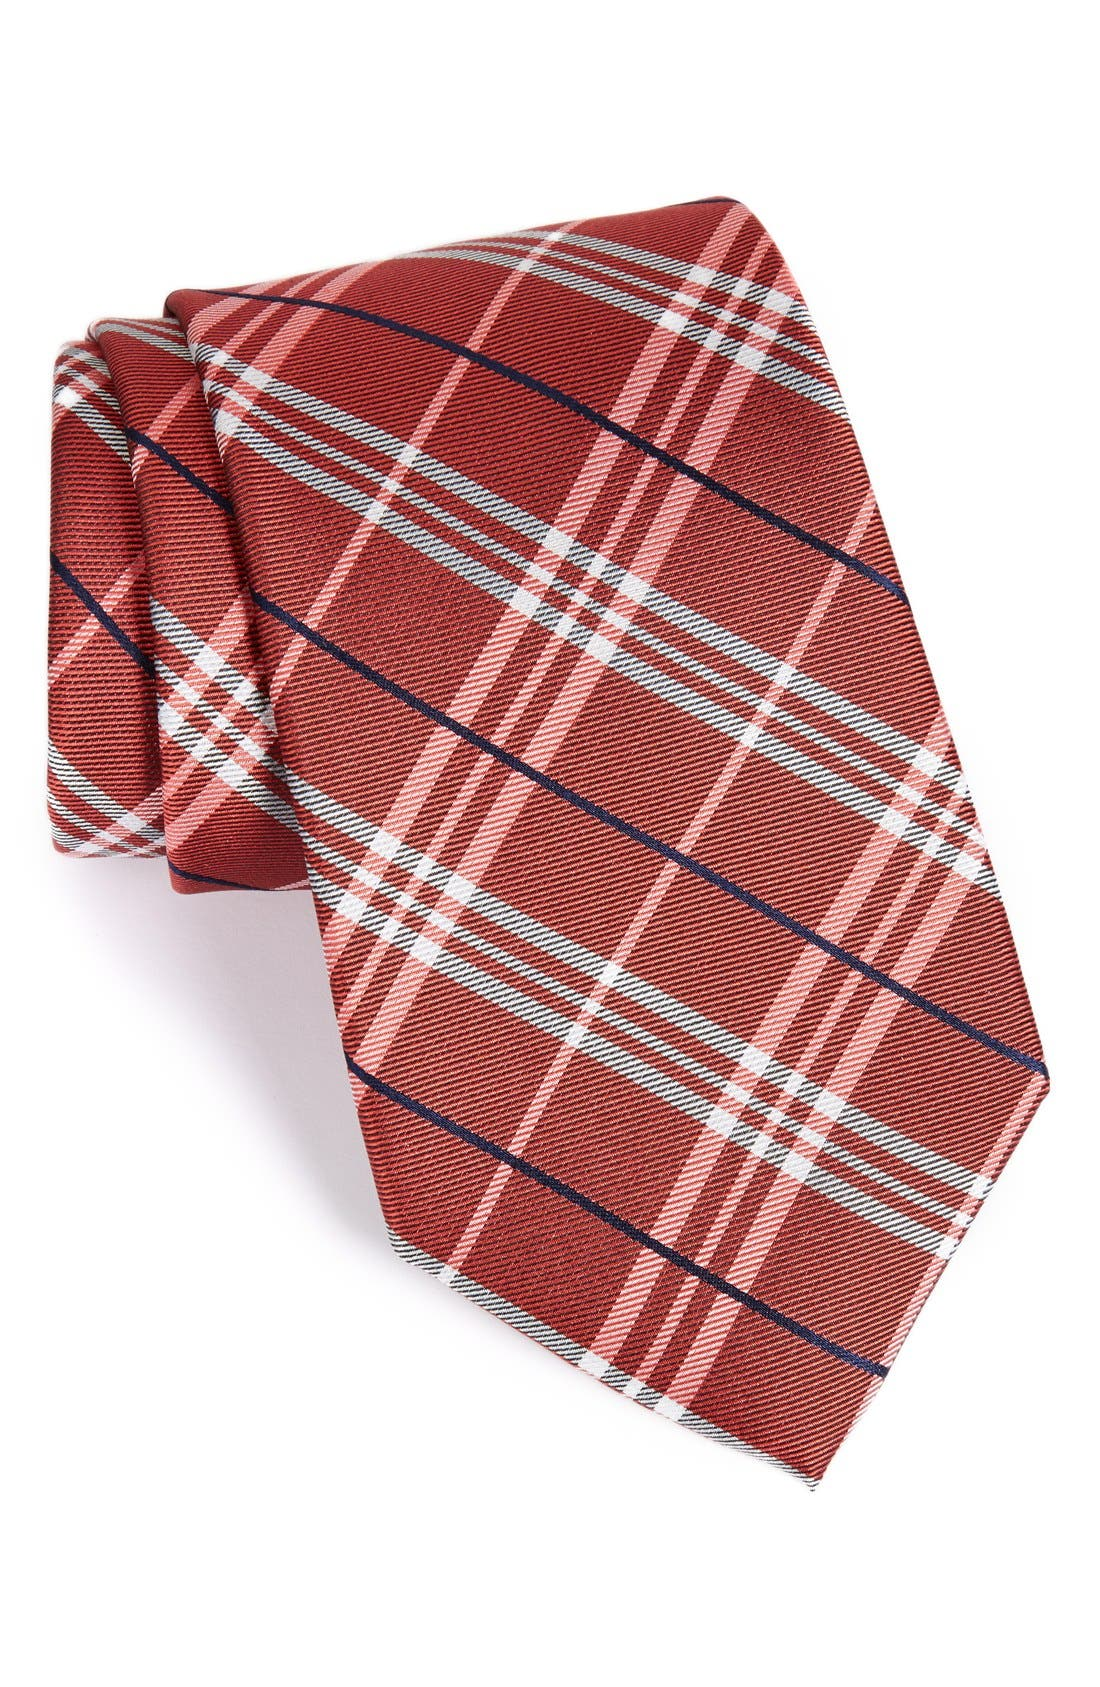 Alternate Image 1 Selected - Nordstrom Men's Shop 'Urban Plaid' Silk Tie